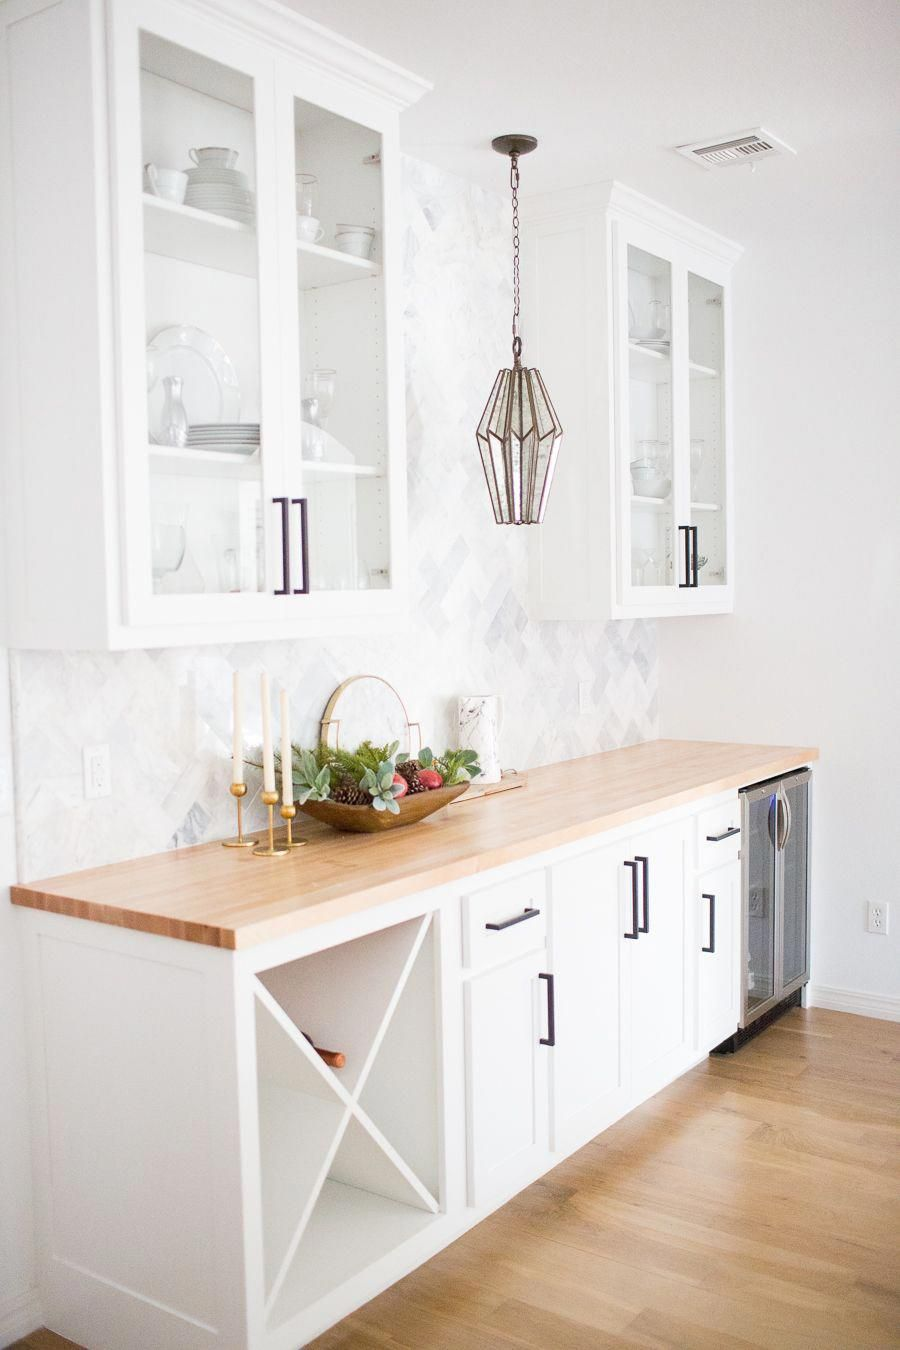 Tulsa Remodel Reveal Modern White Farmhouse With Black Windows And Doors Kitchen Cabinets Decor Butcher Block Countertops White Cabinets Kitchen Cabinet Design